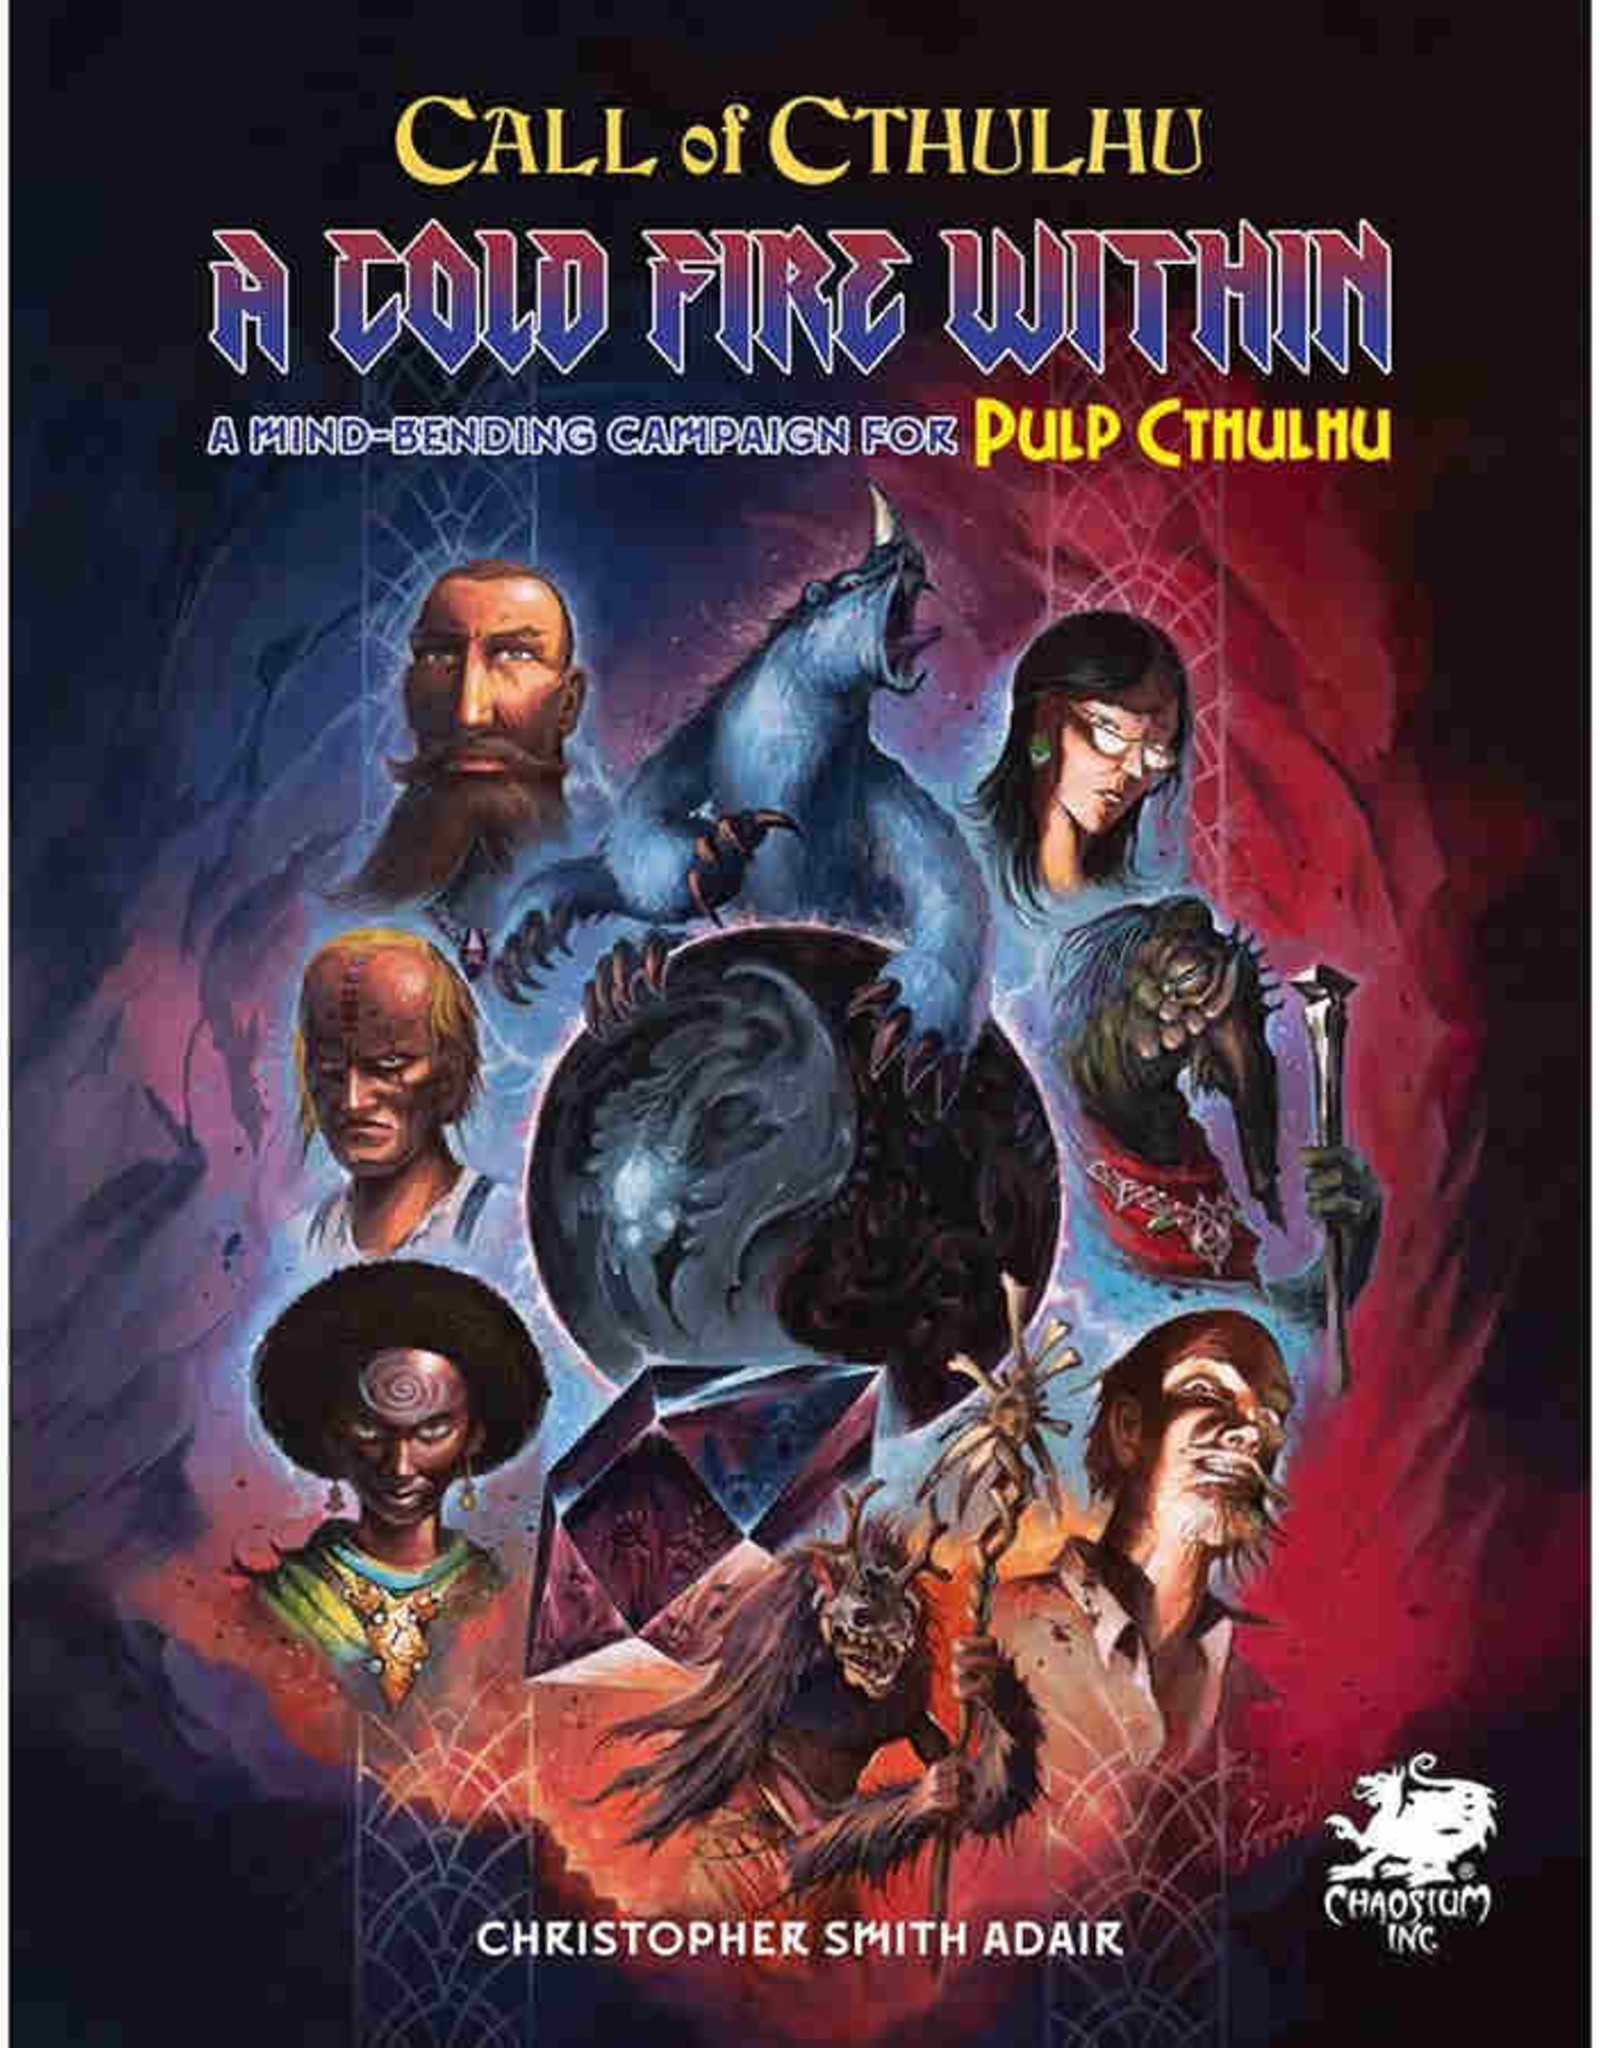 Chaosium Inc. Call of Cthulhu 7E: A Cold Fire Within